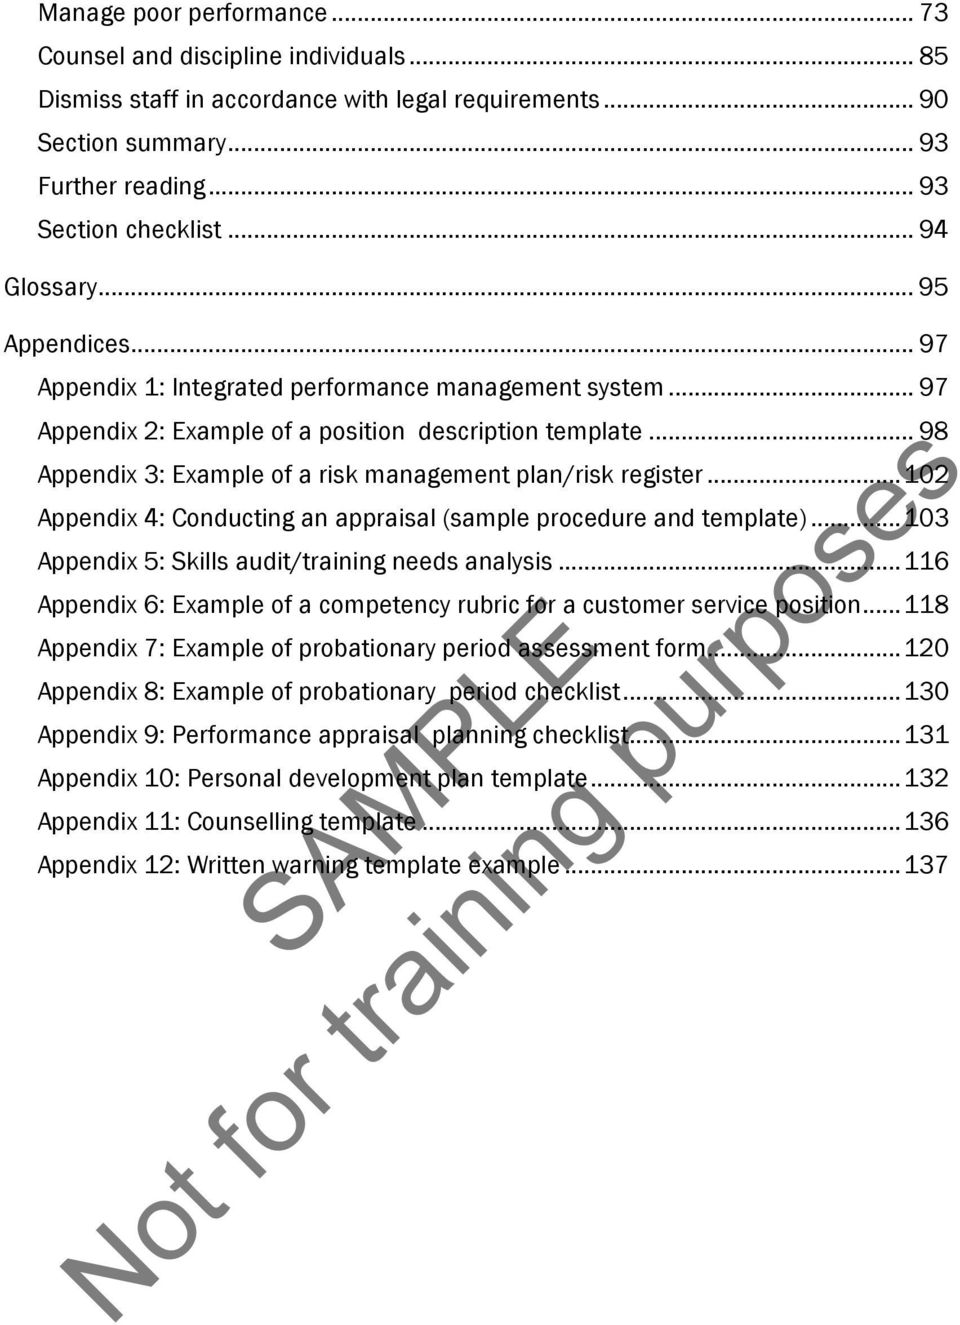 98 Appendix 3 Example Of A Risk Management Plan Register